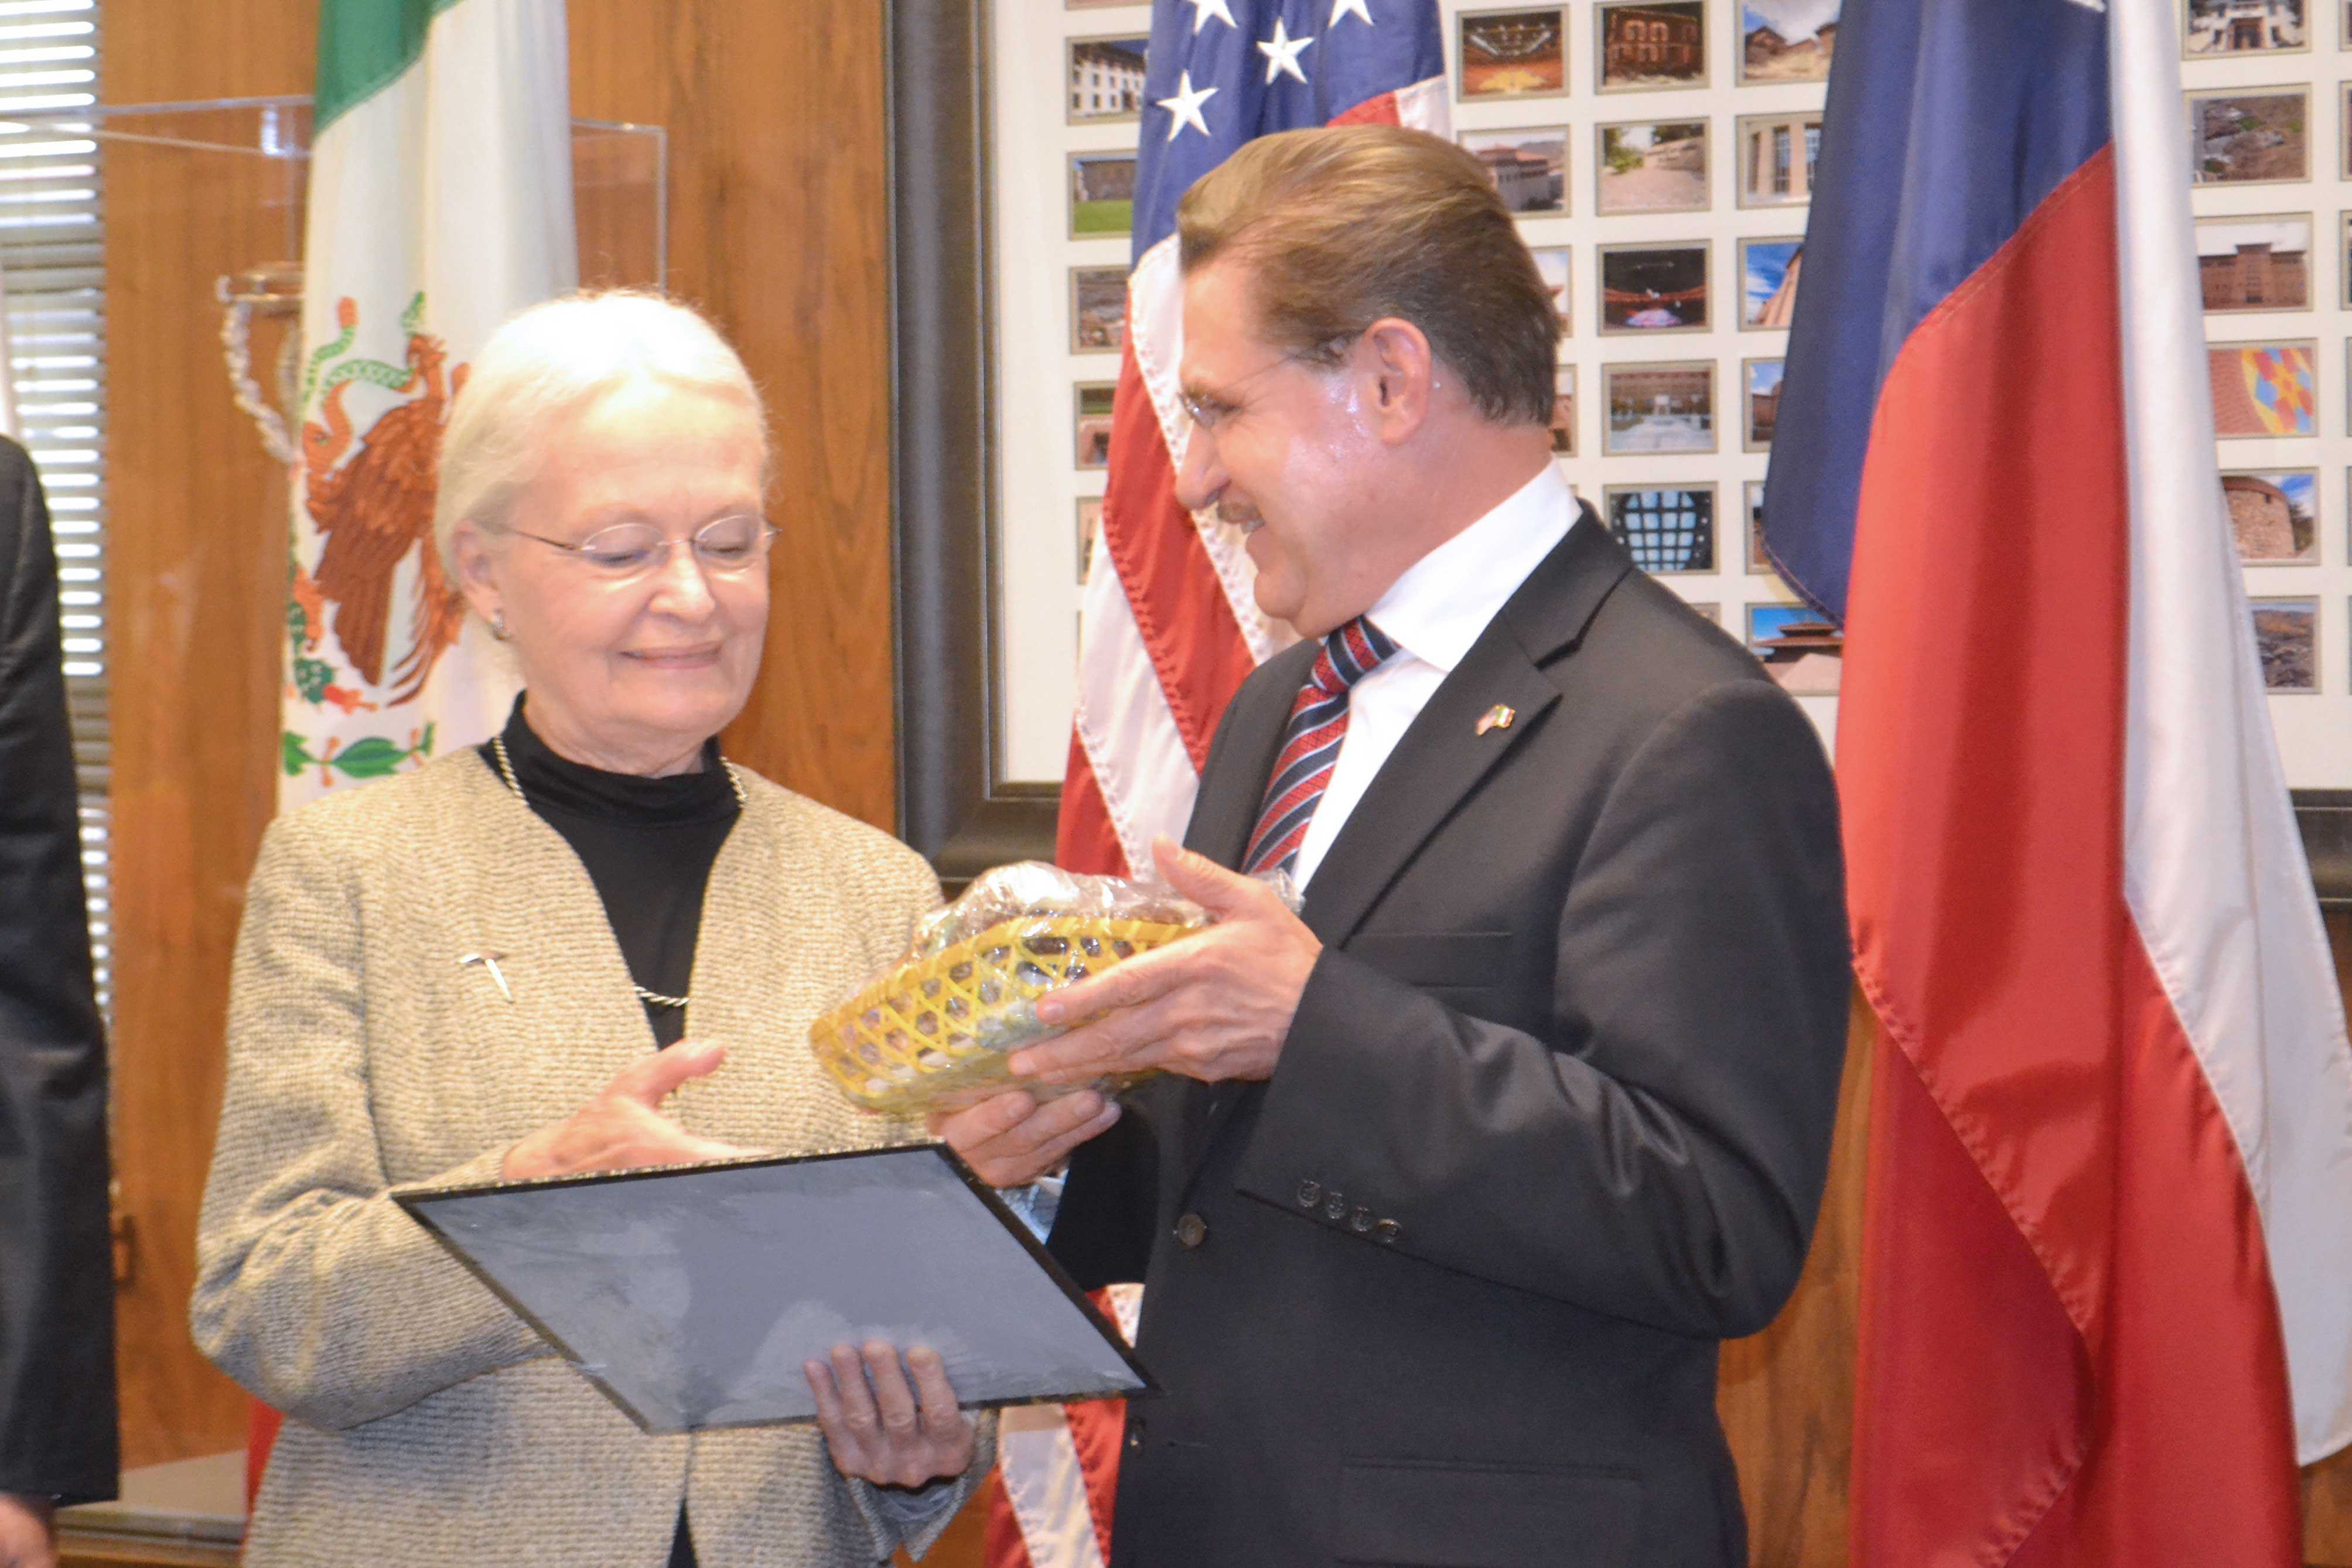 President Dr. Natalicio received traditional candy from the governor of Durango 11/03/2016